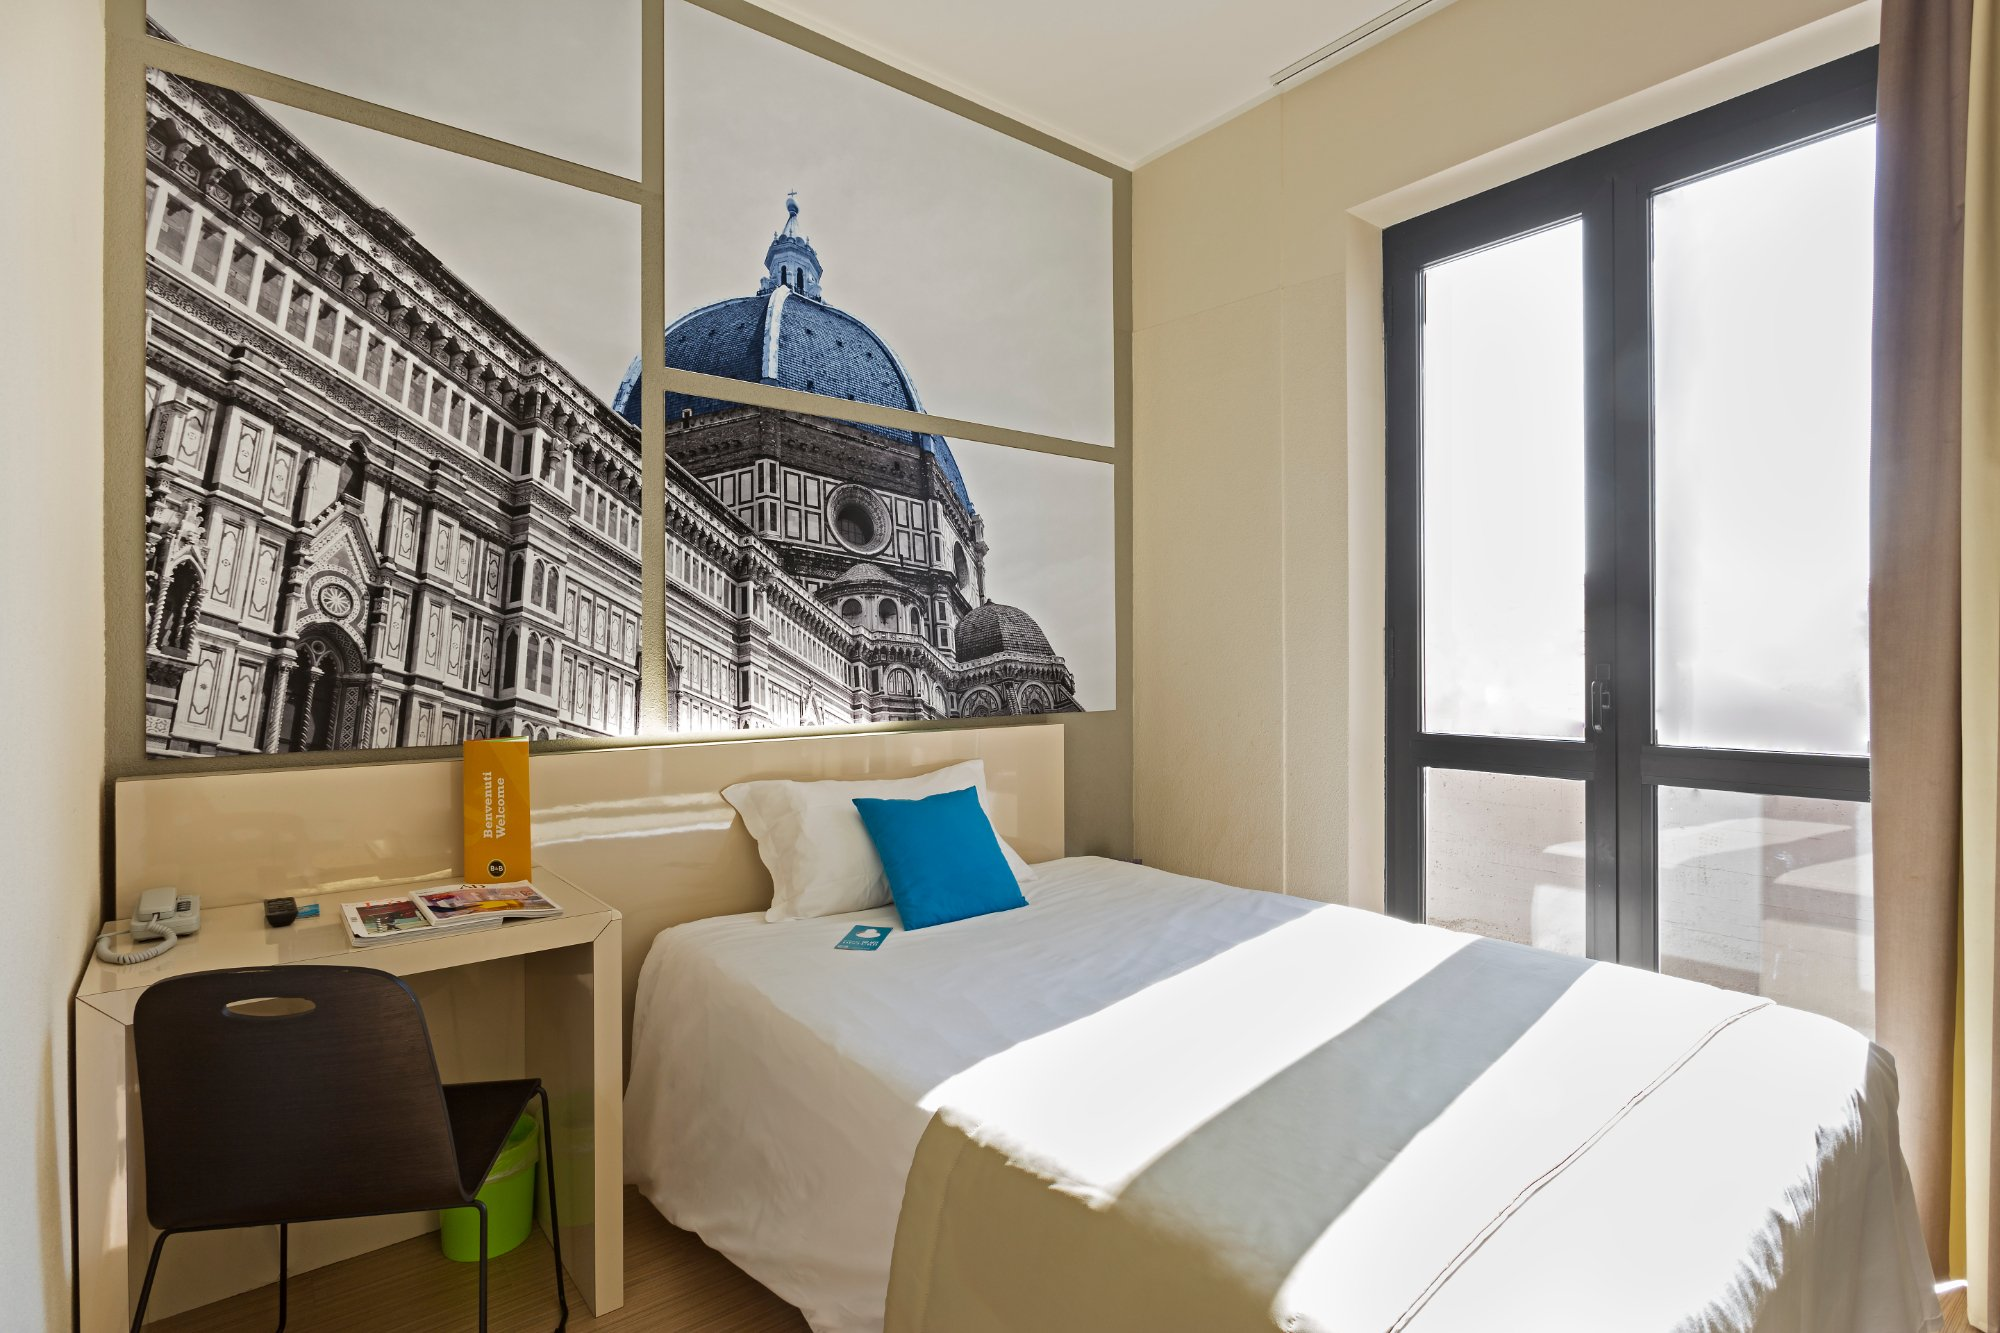 B&B Hotel Firenze City Center